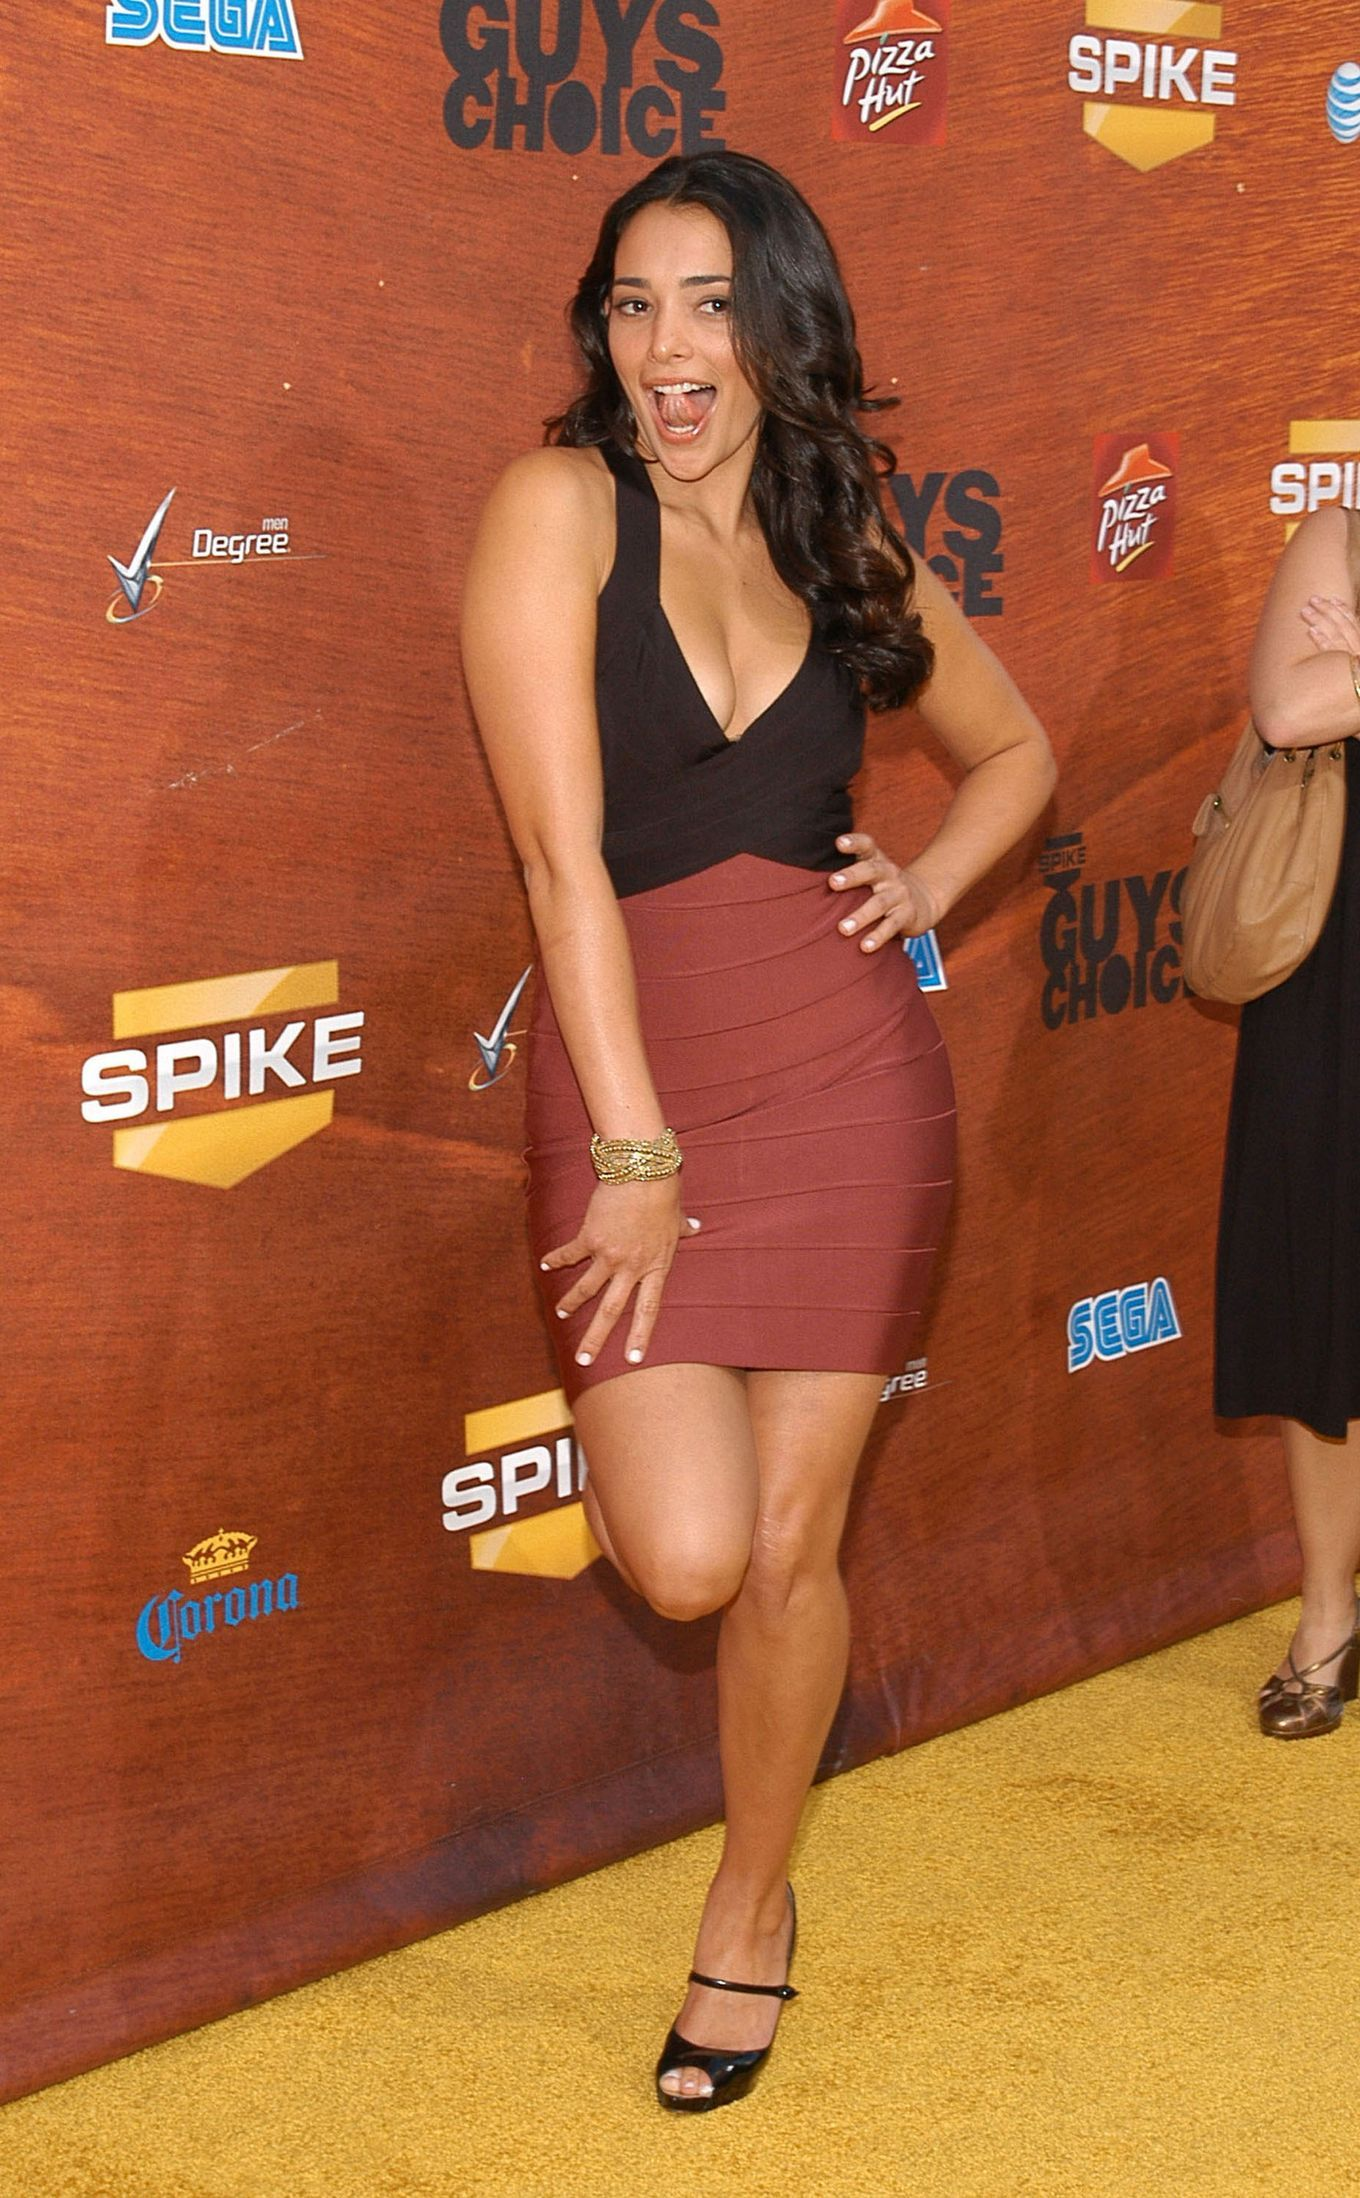 Feet Alexandra Michelle Rodriguez nudes (36 photo), Tits, Is a cute, Twitter, underwear 2006